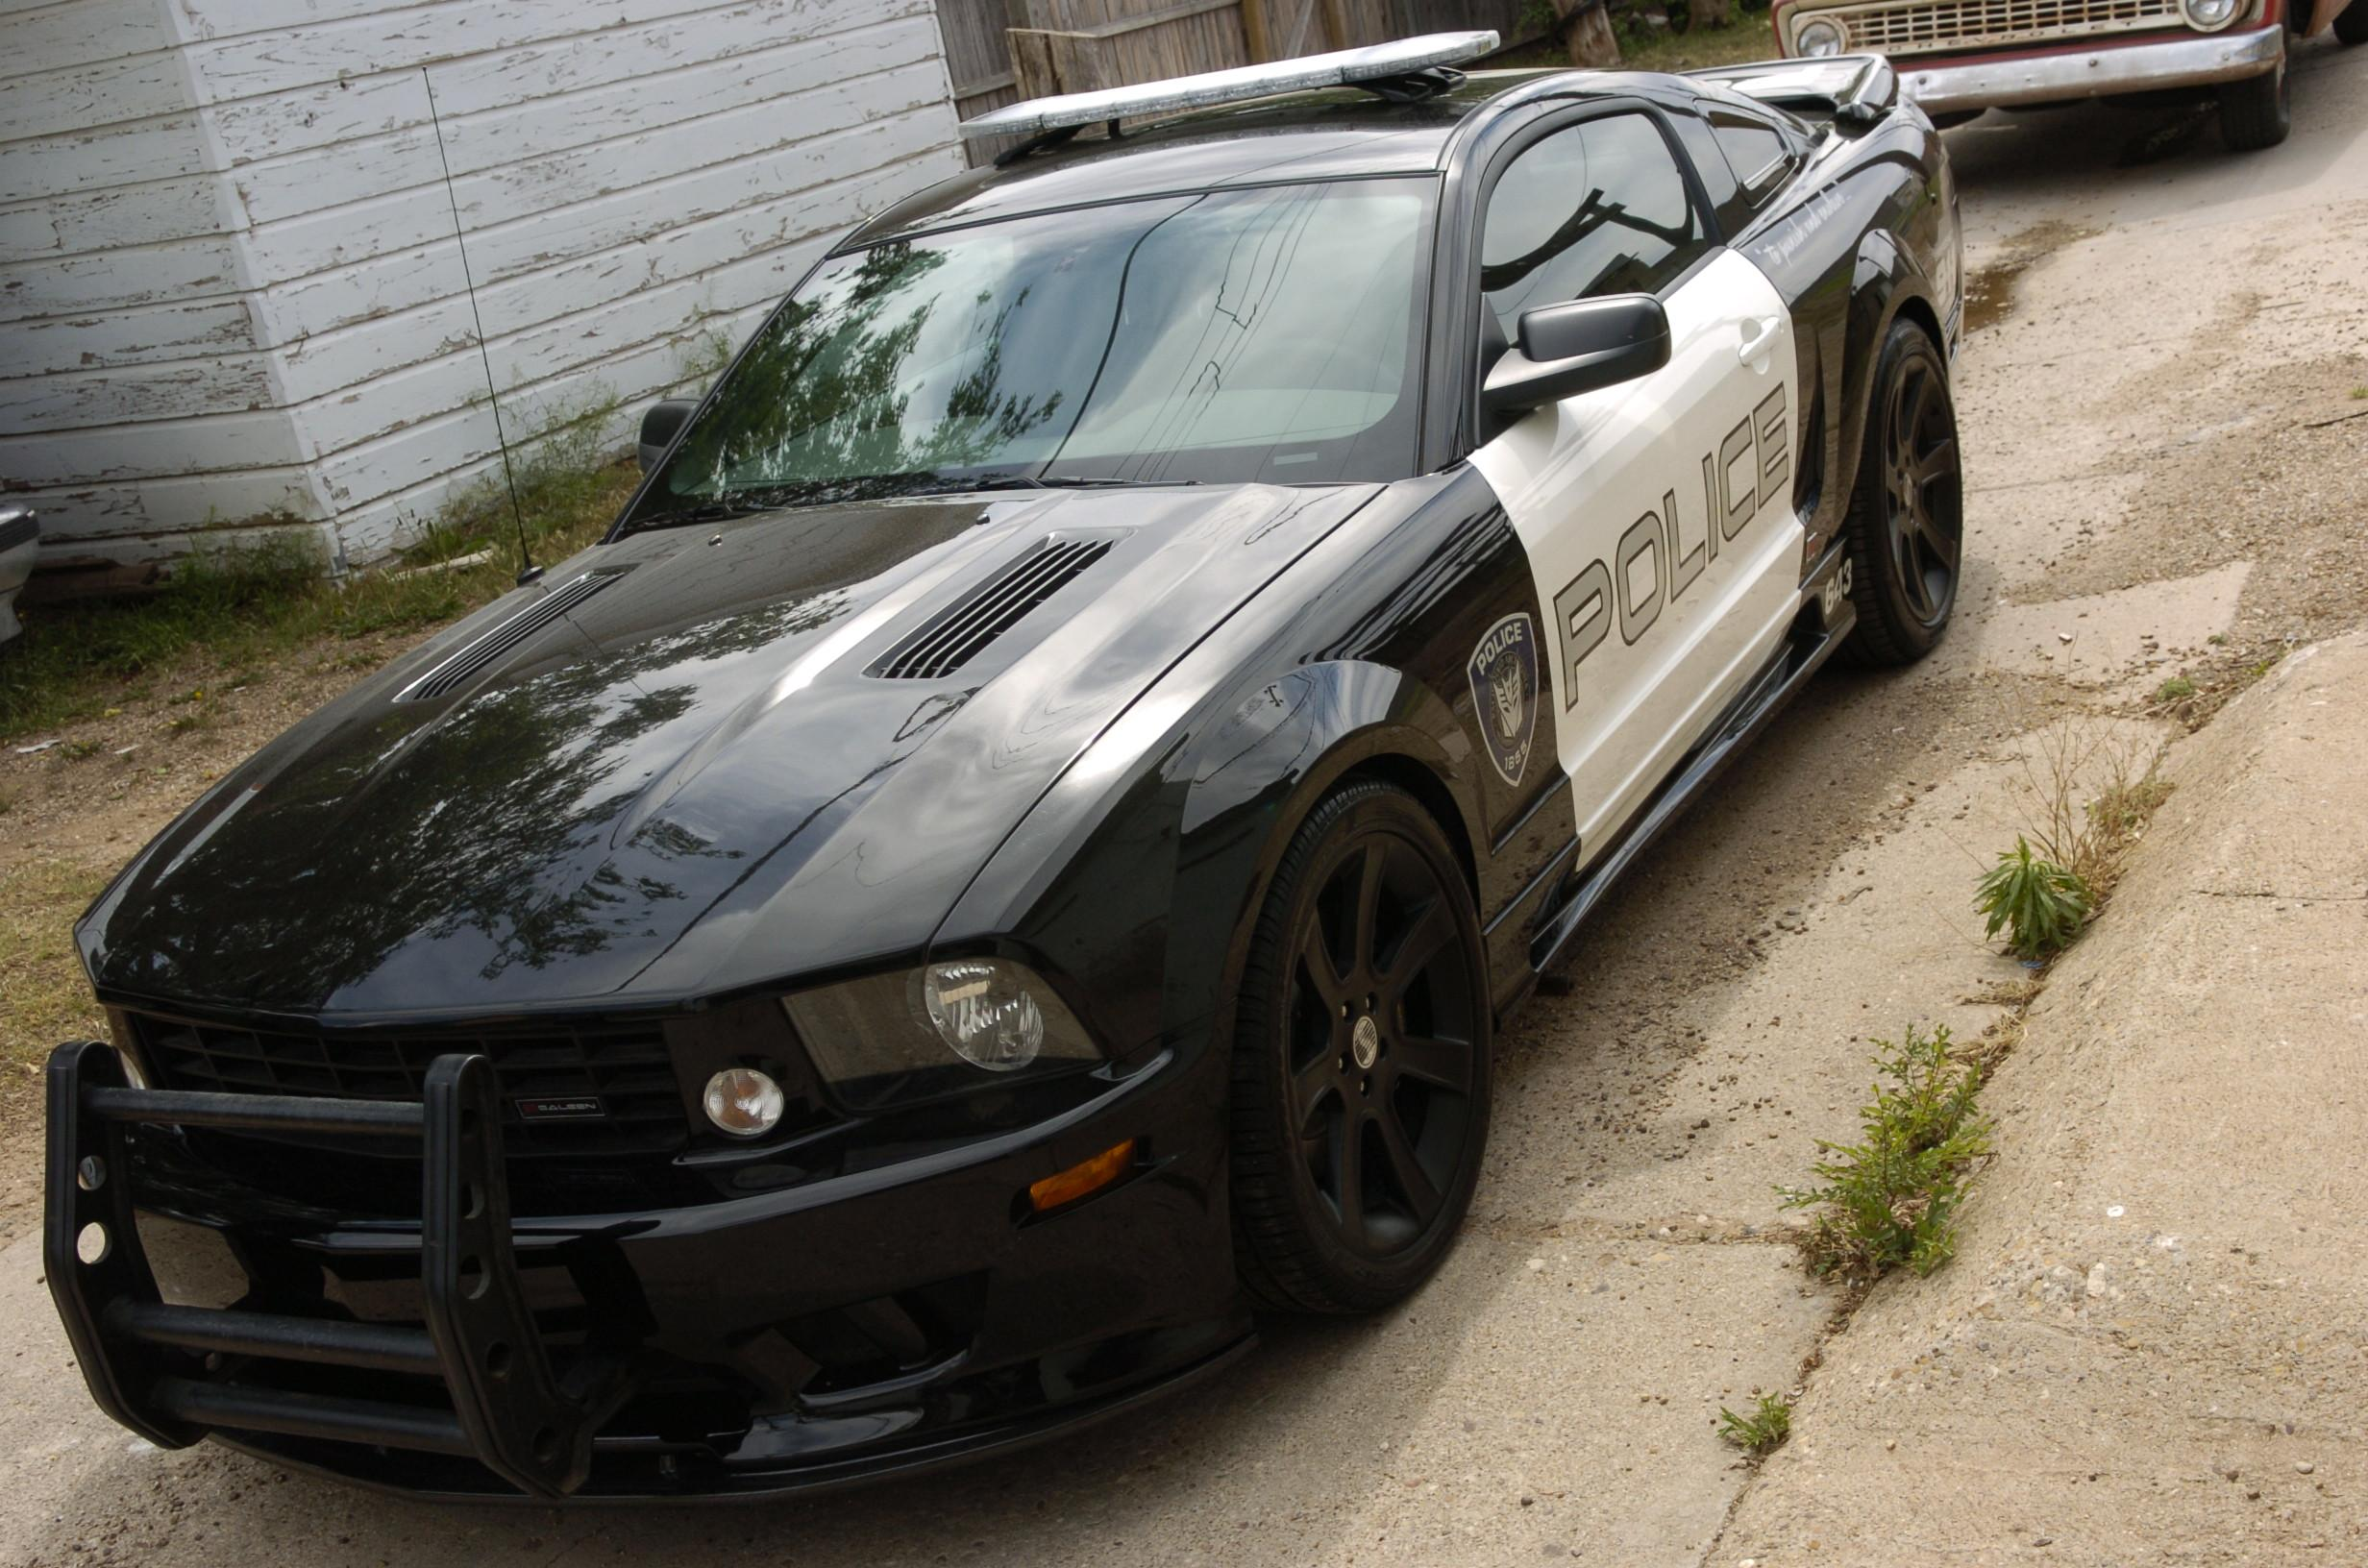 2008 ford mustang saleen extreme lapd cruiser coches clasicos de hoy. Black Bedroom Furniture Sets. Home Design Ideas